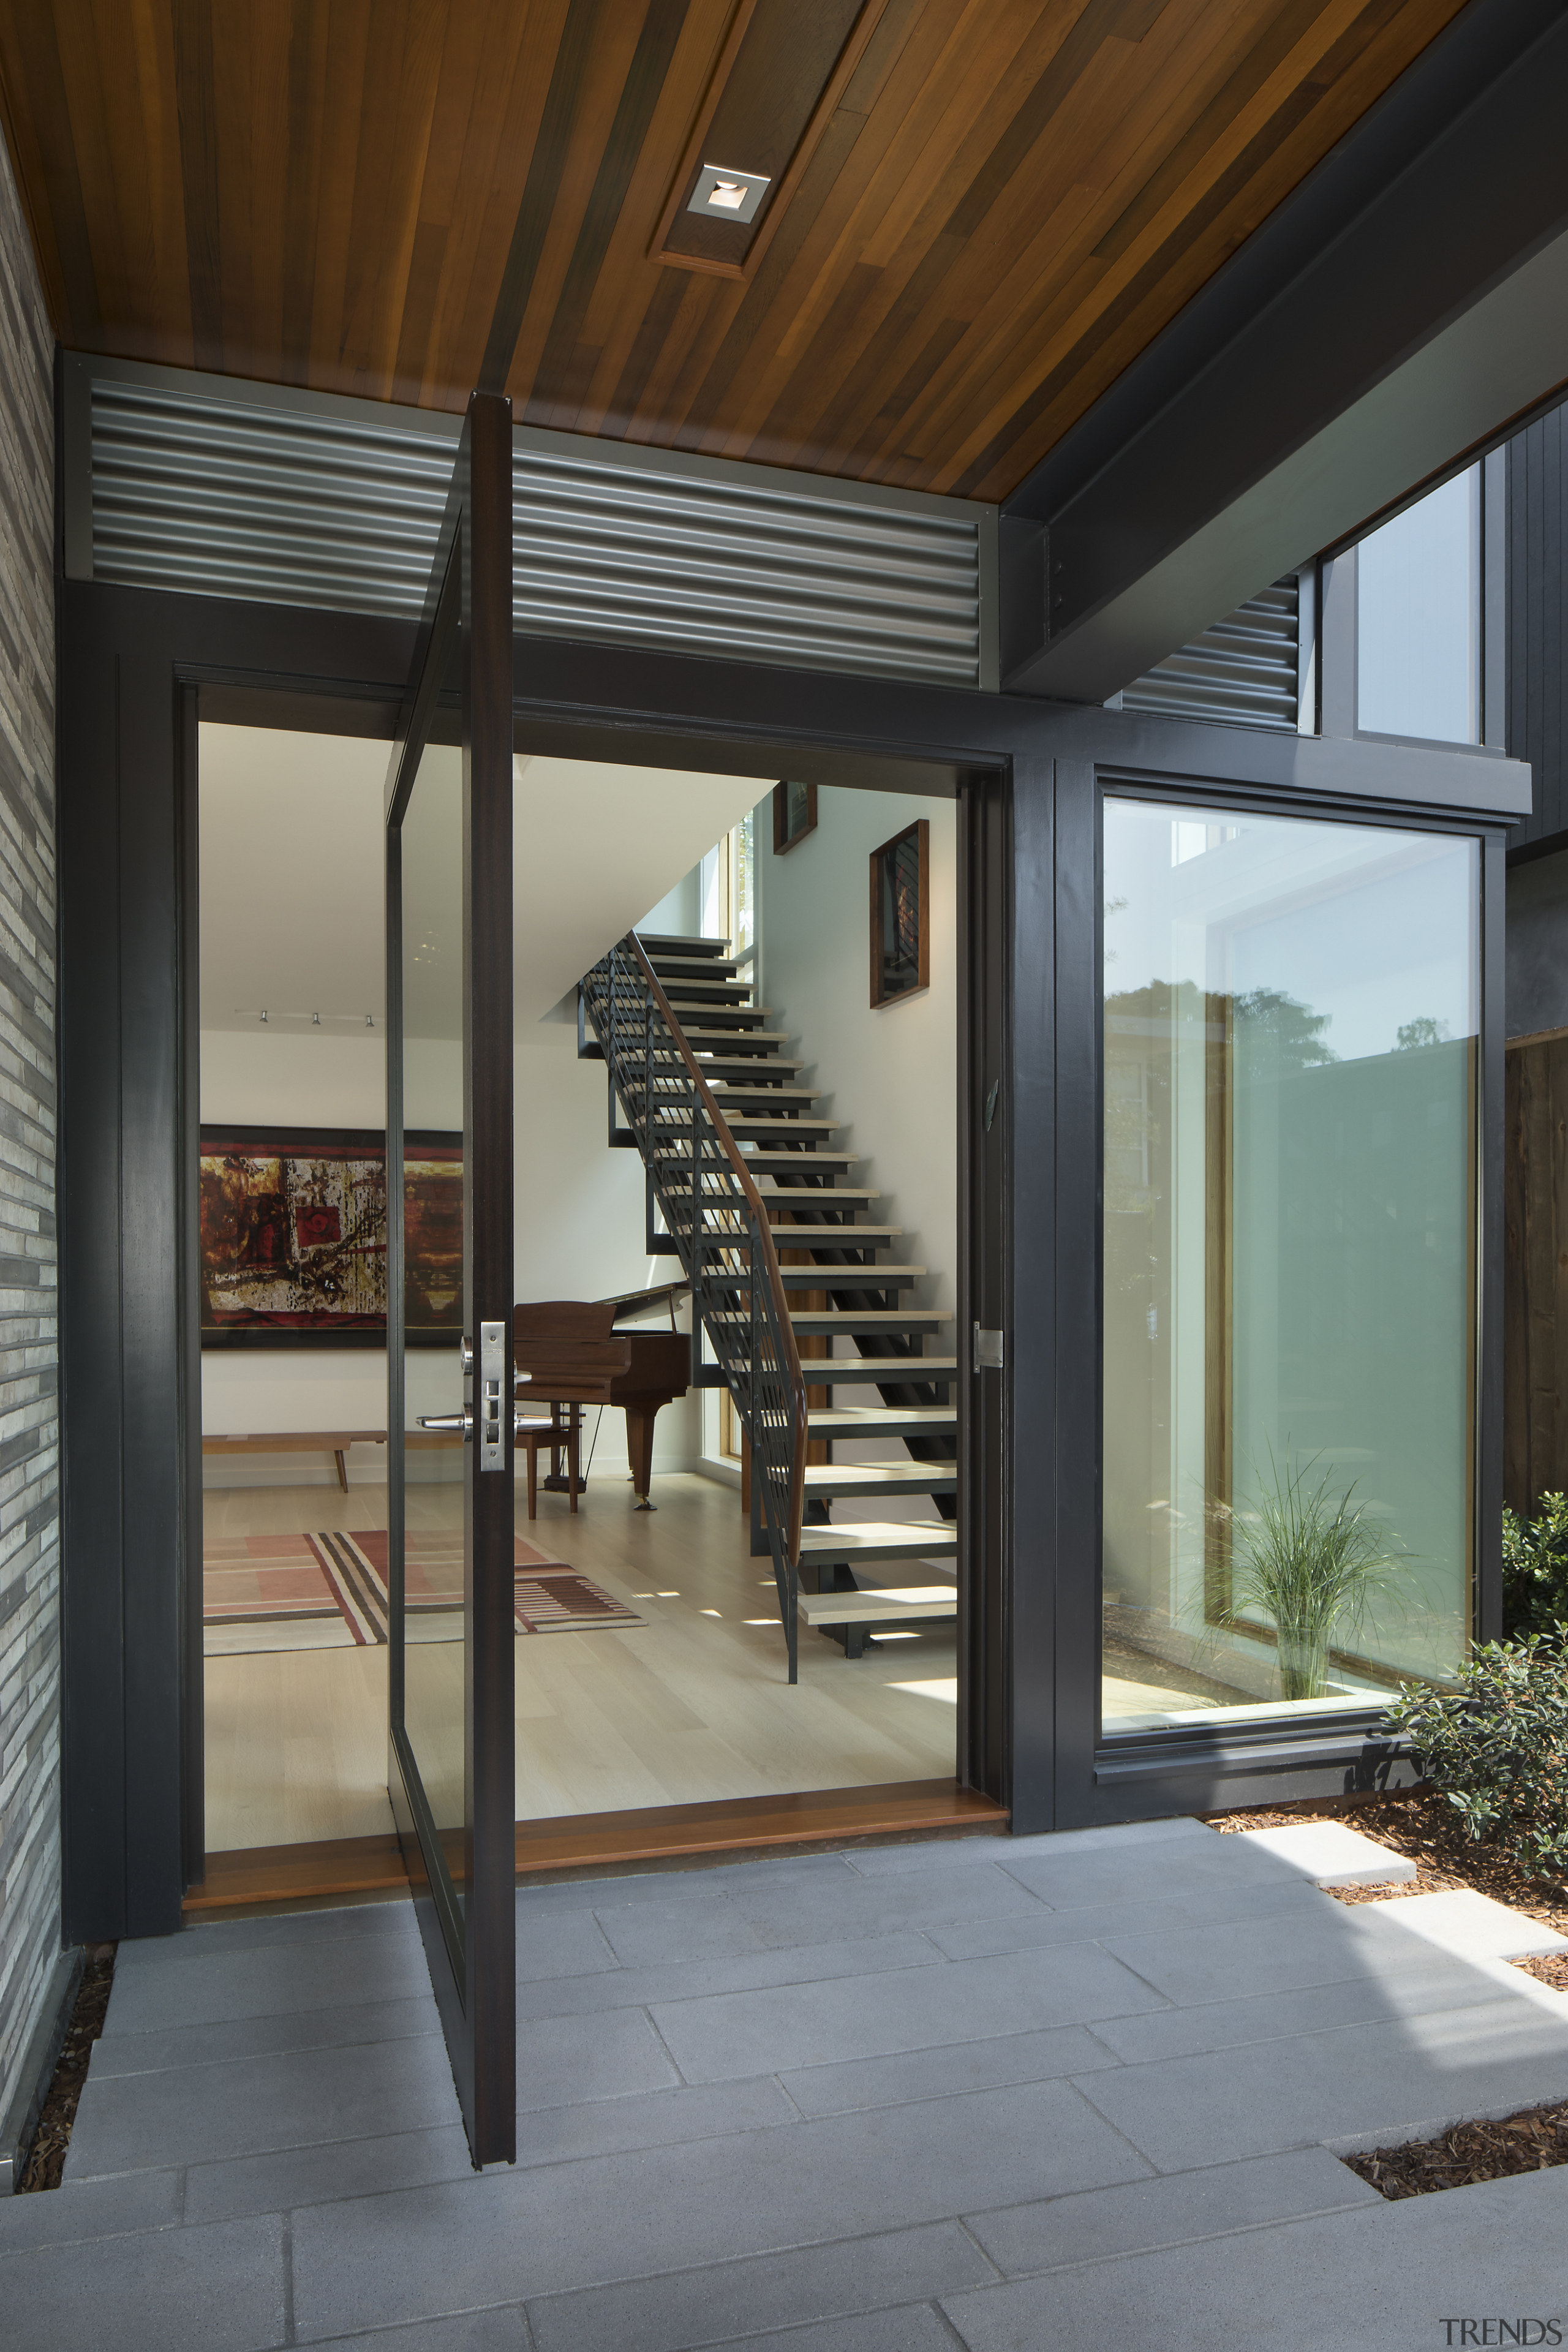 Custom Finne design elements include the spare steel architecture, door, house, interior design, window, gray, black